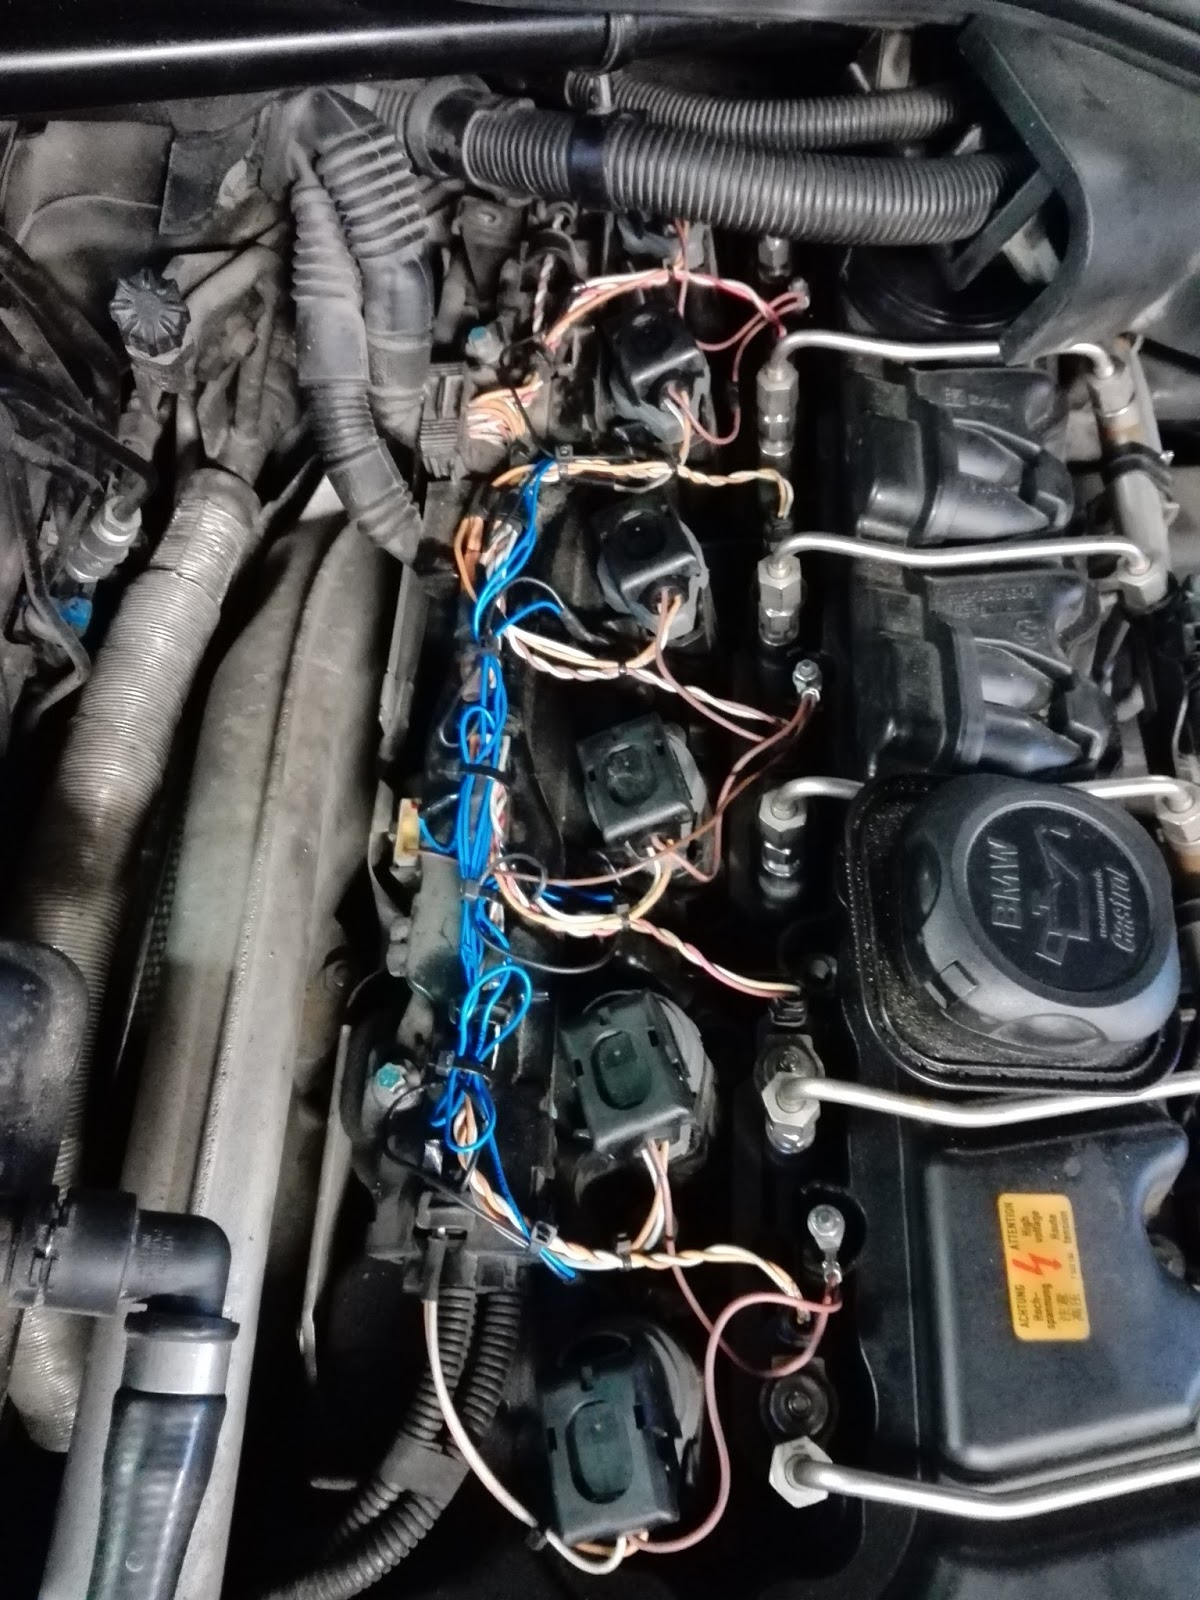 Ignition Coil Wiring Diagram Together With Difference Between 1971 And